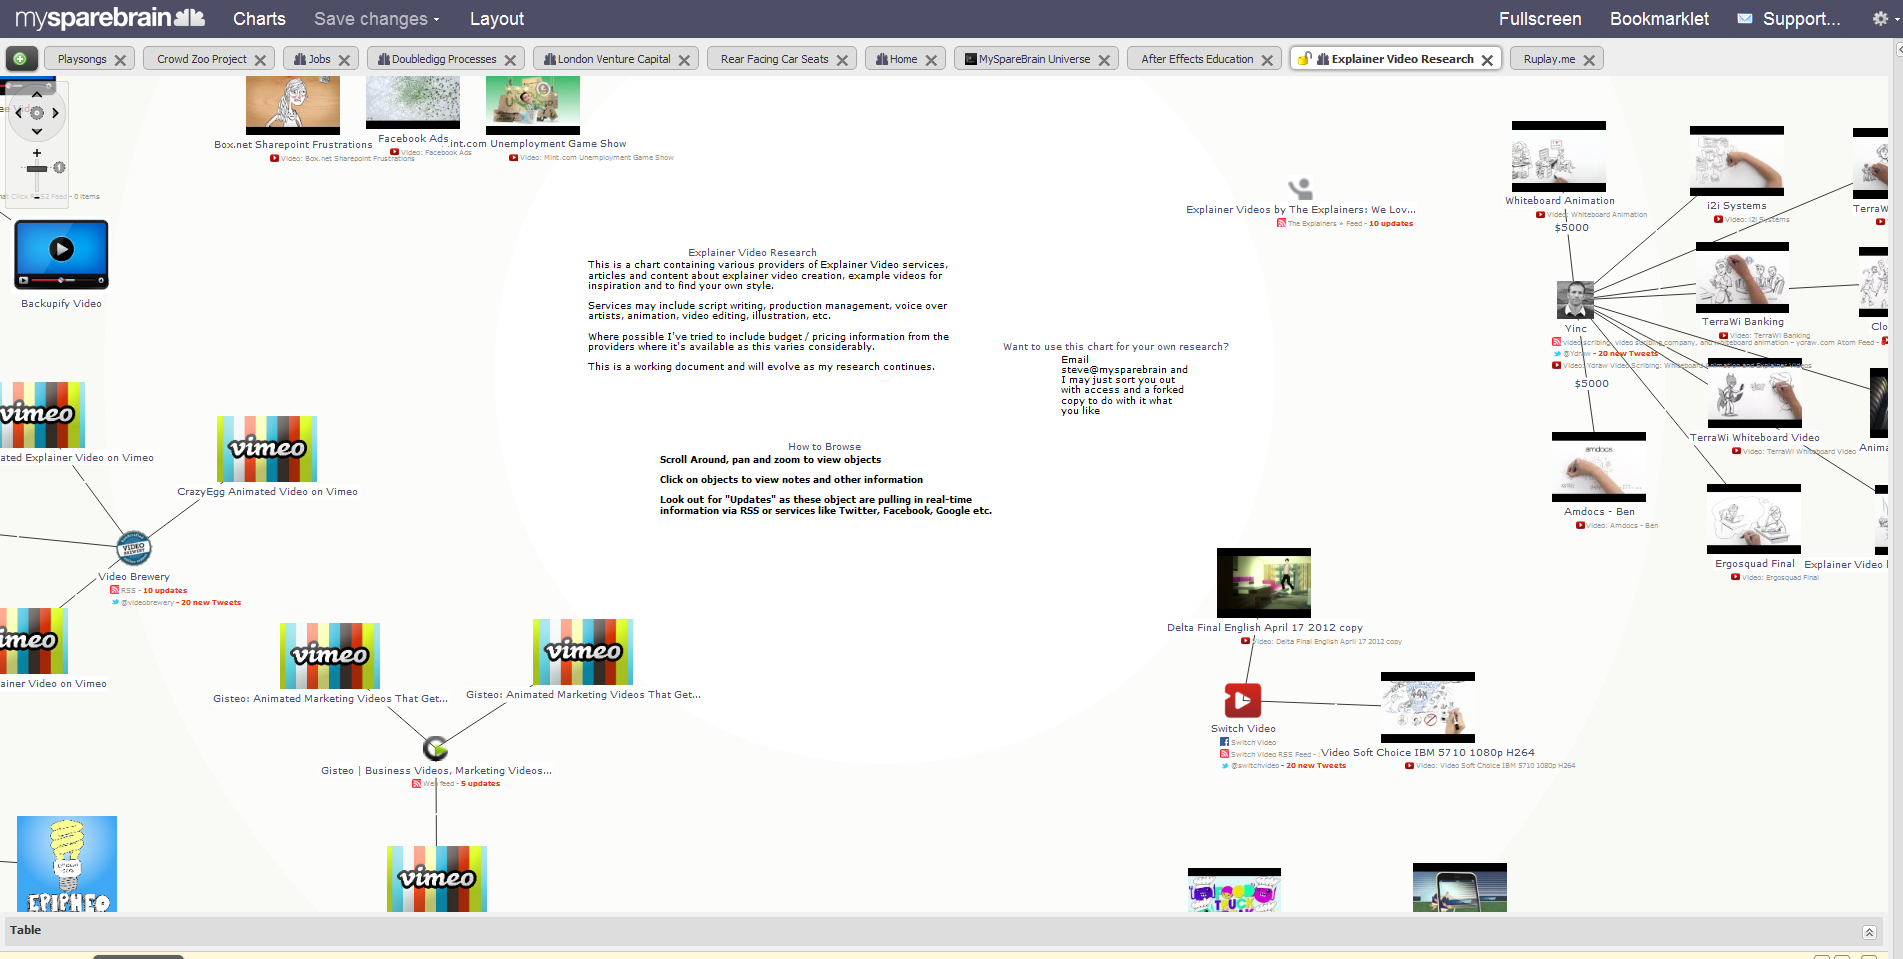 Click to load the MySpareBrain viewer, and find the Video Explainer Research Tab to load the chart.